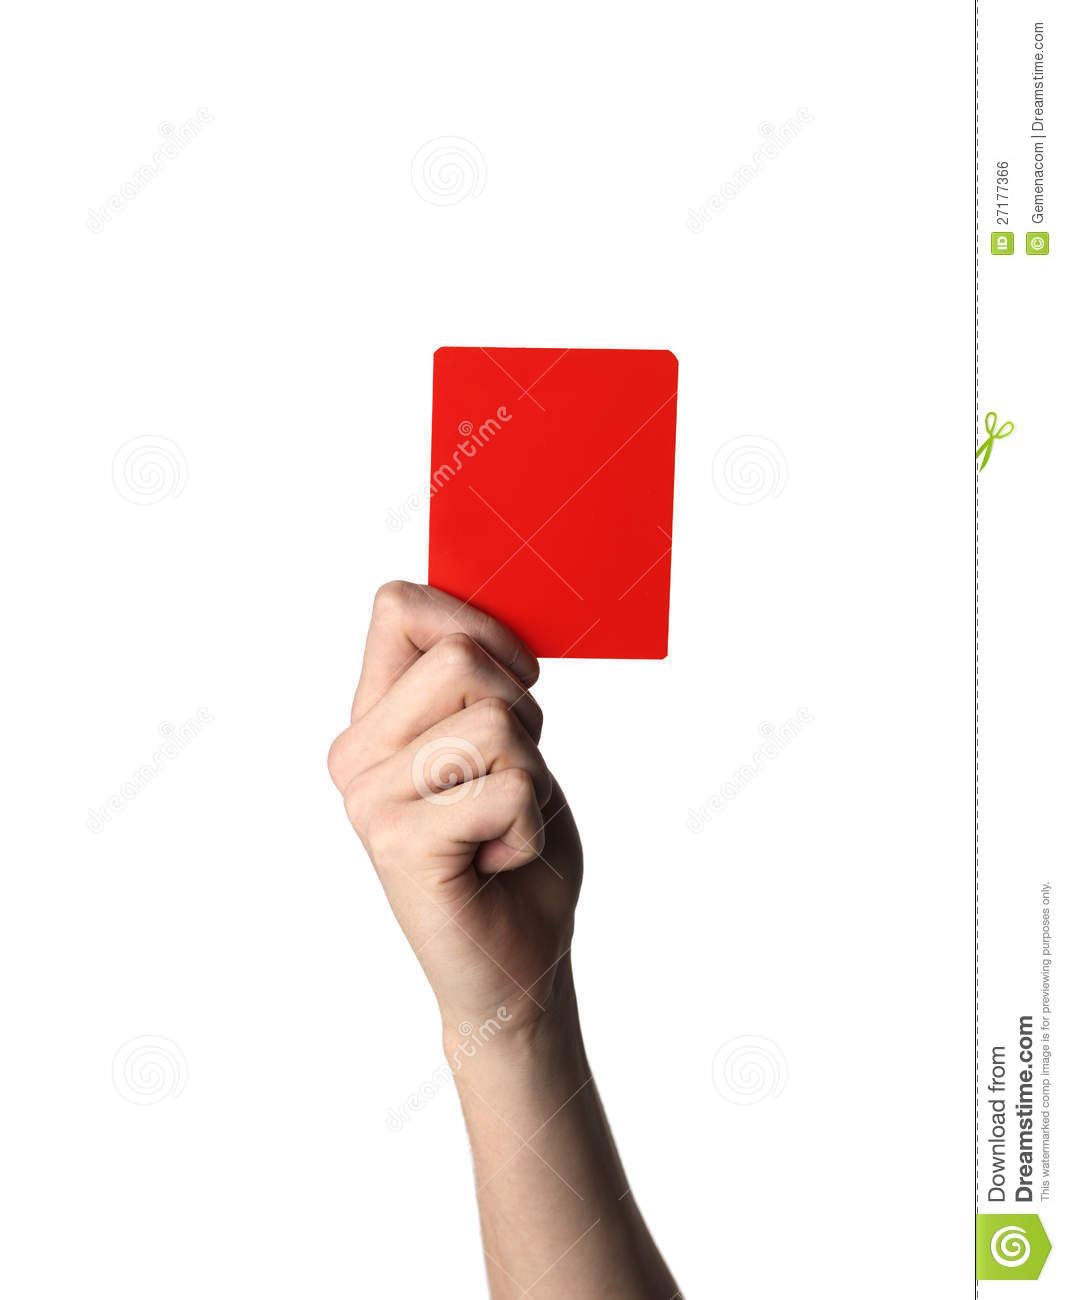 Red Card Royalty Free Stock Image - Image: 27177366